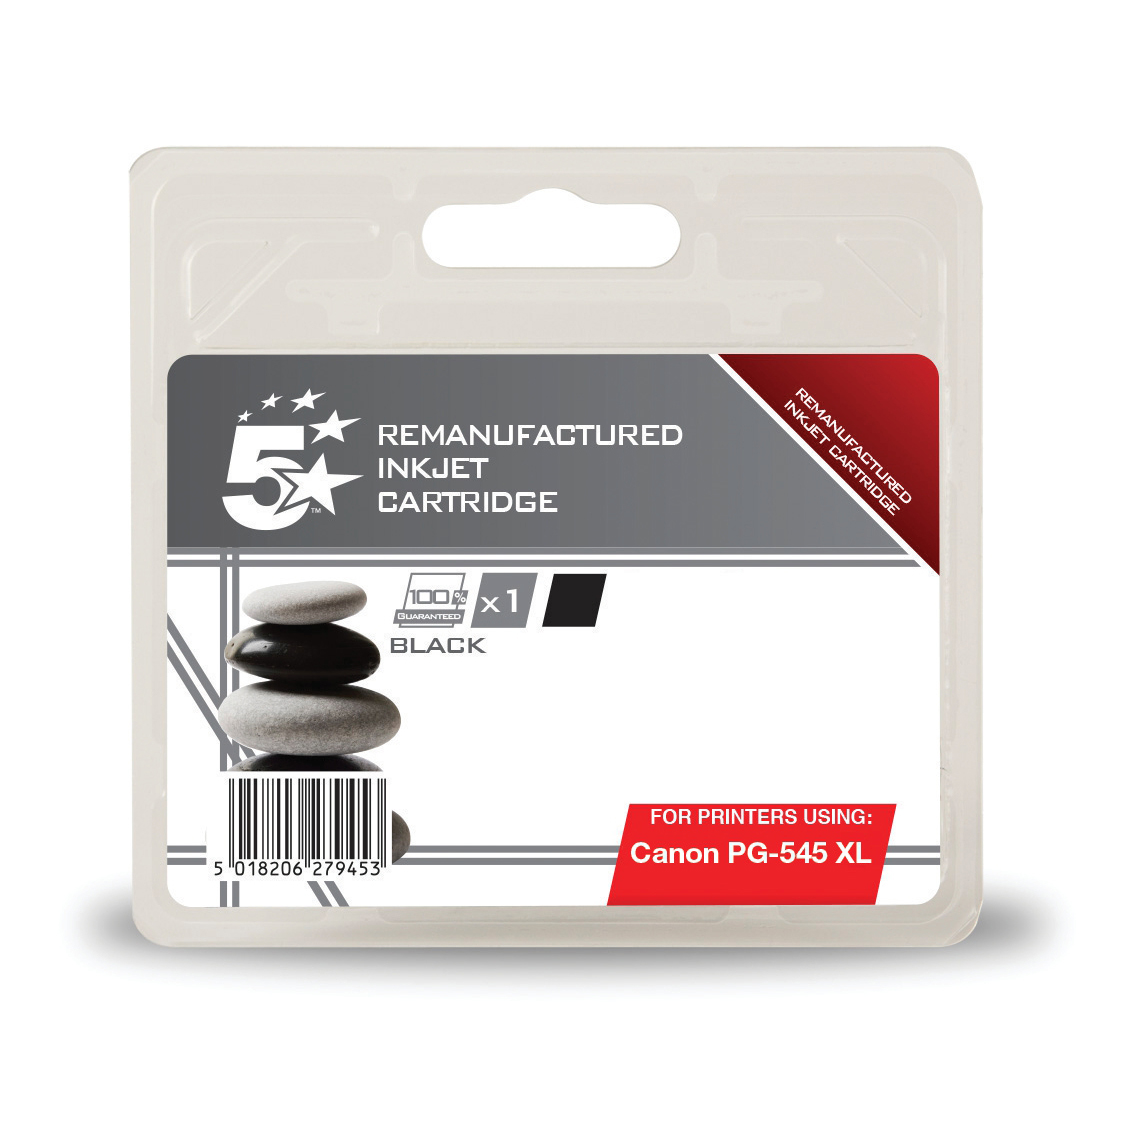 Printheads 5 Star Office Remanufactured Inkjet Cartridge Page Life 400pp 15ml Canon PG-545XL Alternative Black